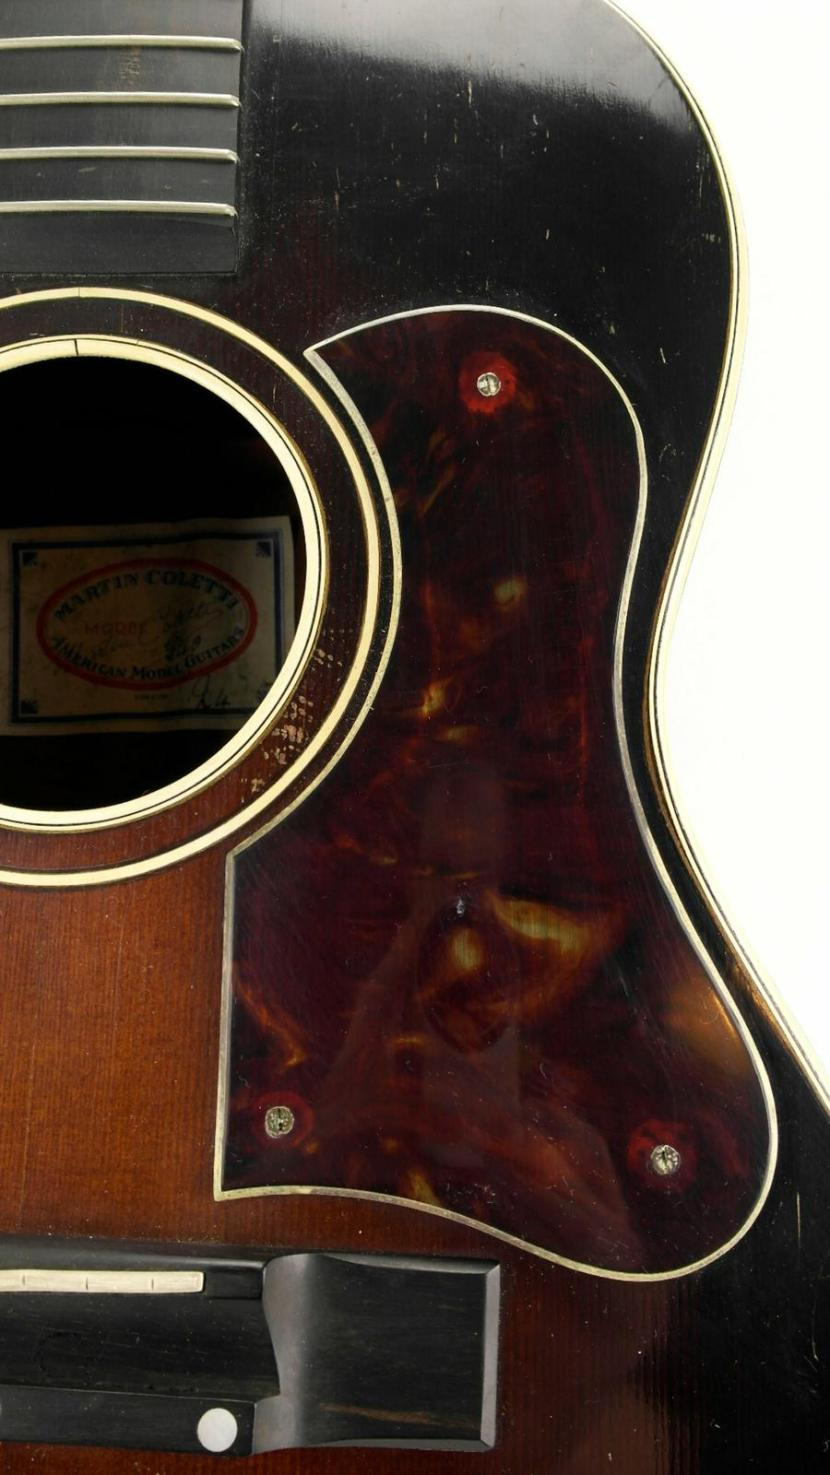 Martin Coletti G40 guitar top, soundhole, pickguard and bridge